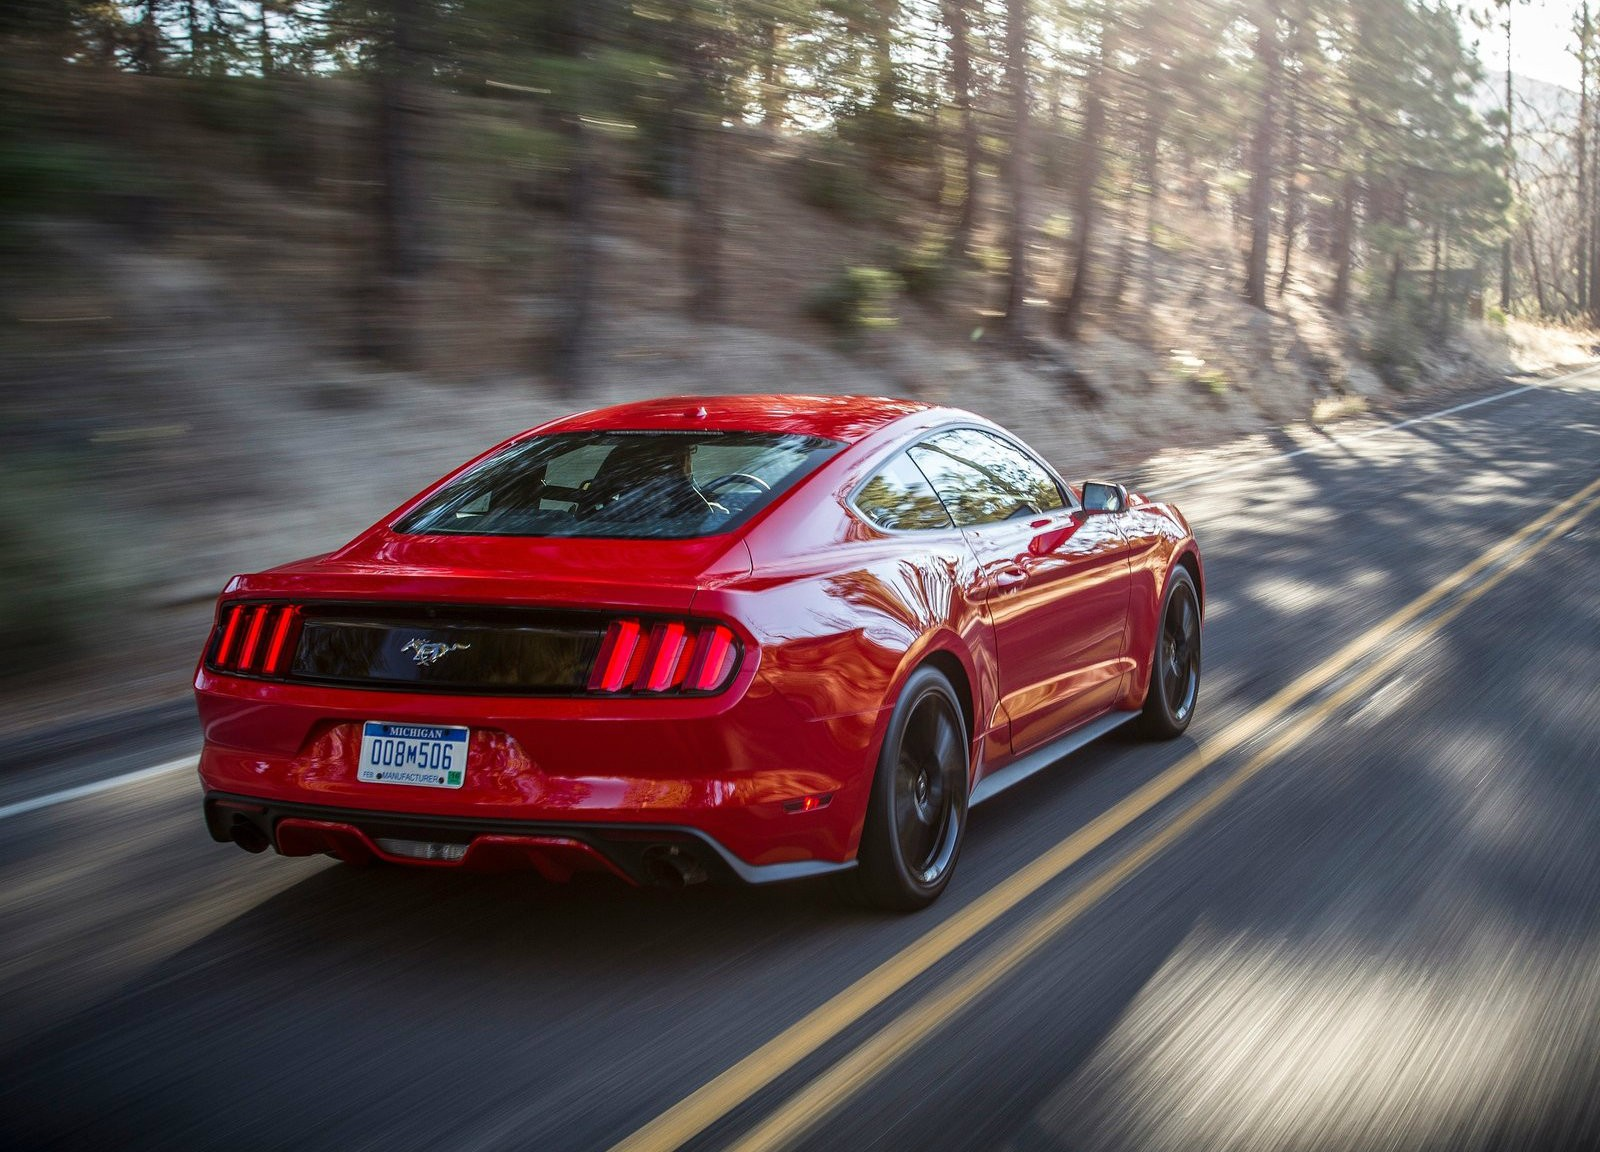 2015 ford mustang european pricing announced 2 3 liter ecoboost. Black Bedroom Furniture Sets. Home Design Ideas